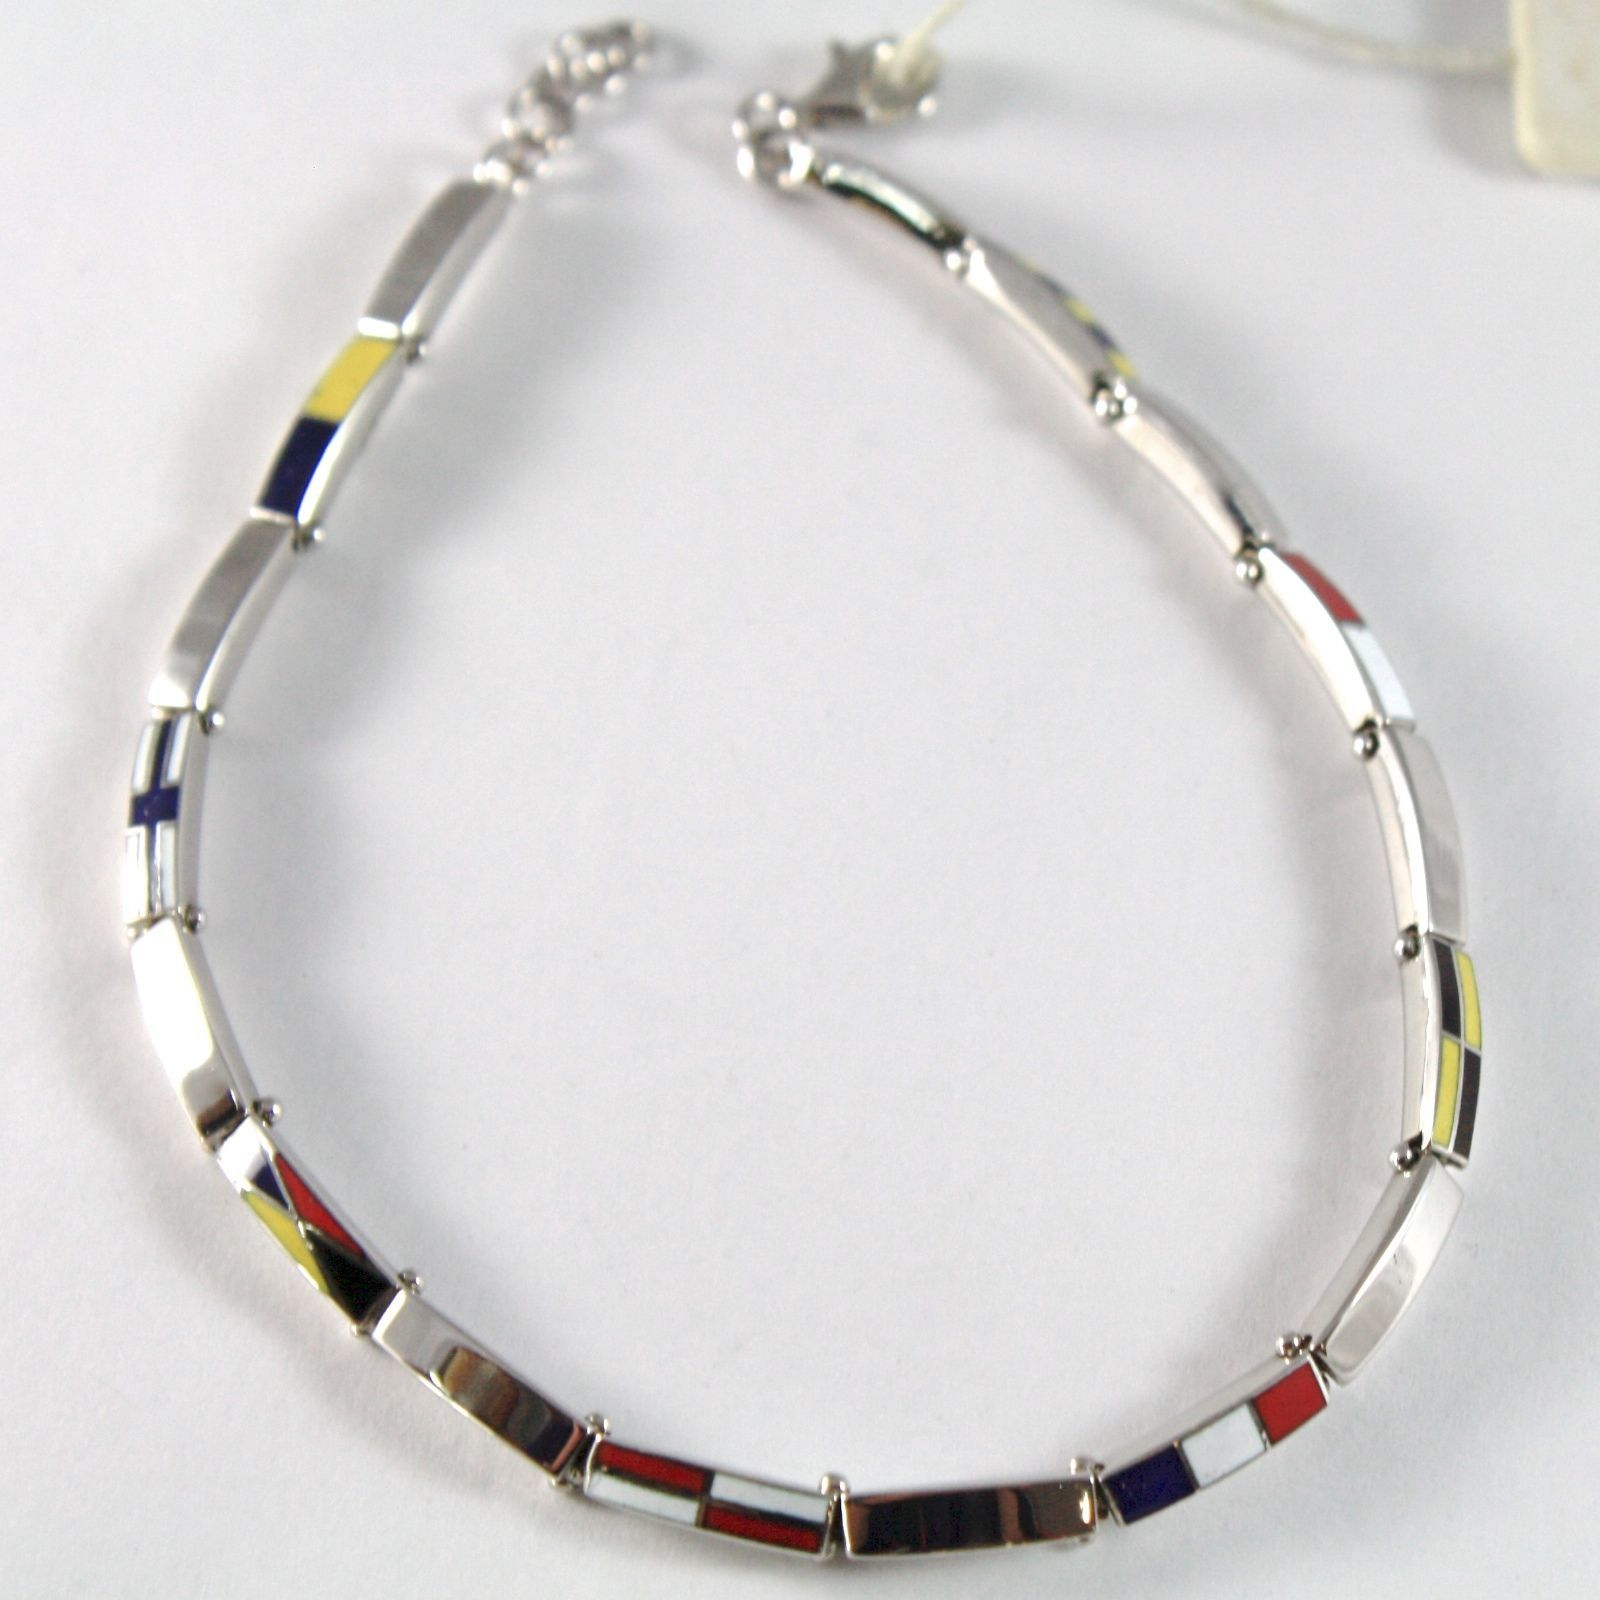 White Gold Bracelet 750 18K, Square Flags Nautical Glazed Tiles, 21 CM